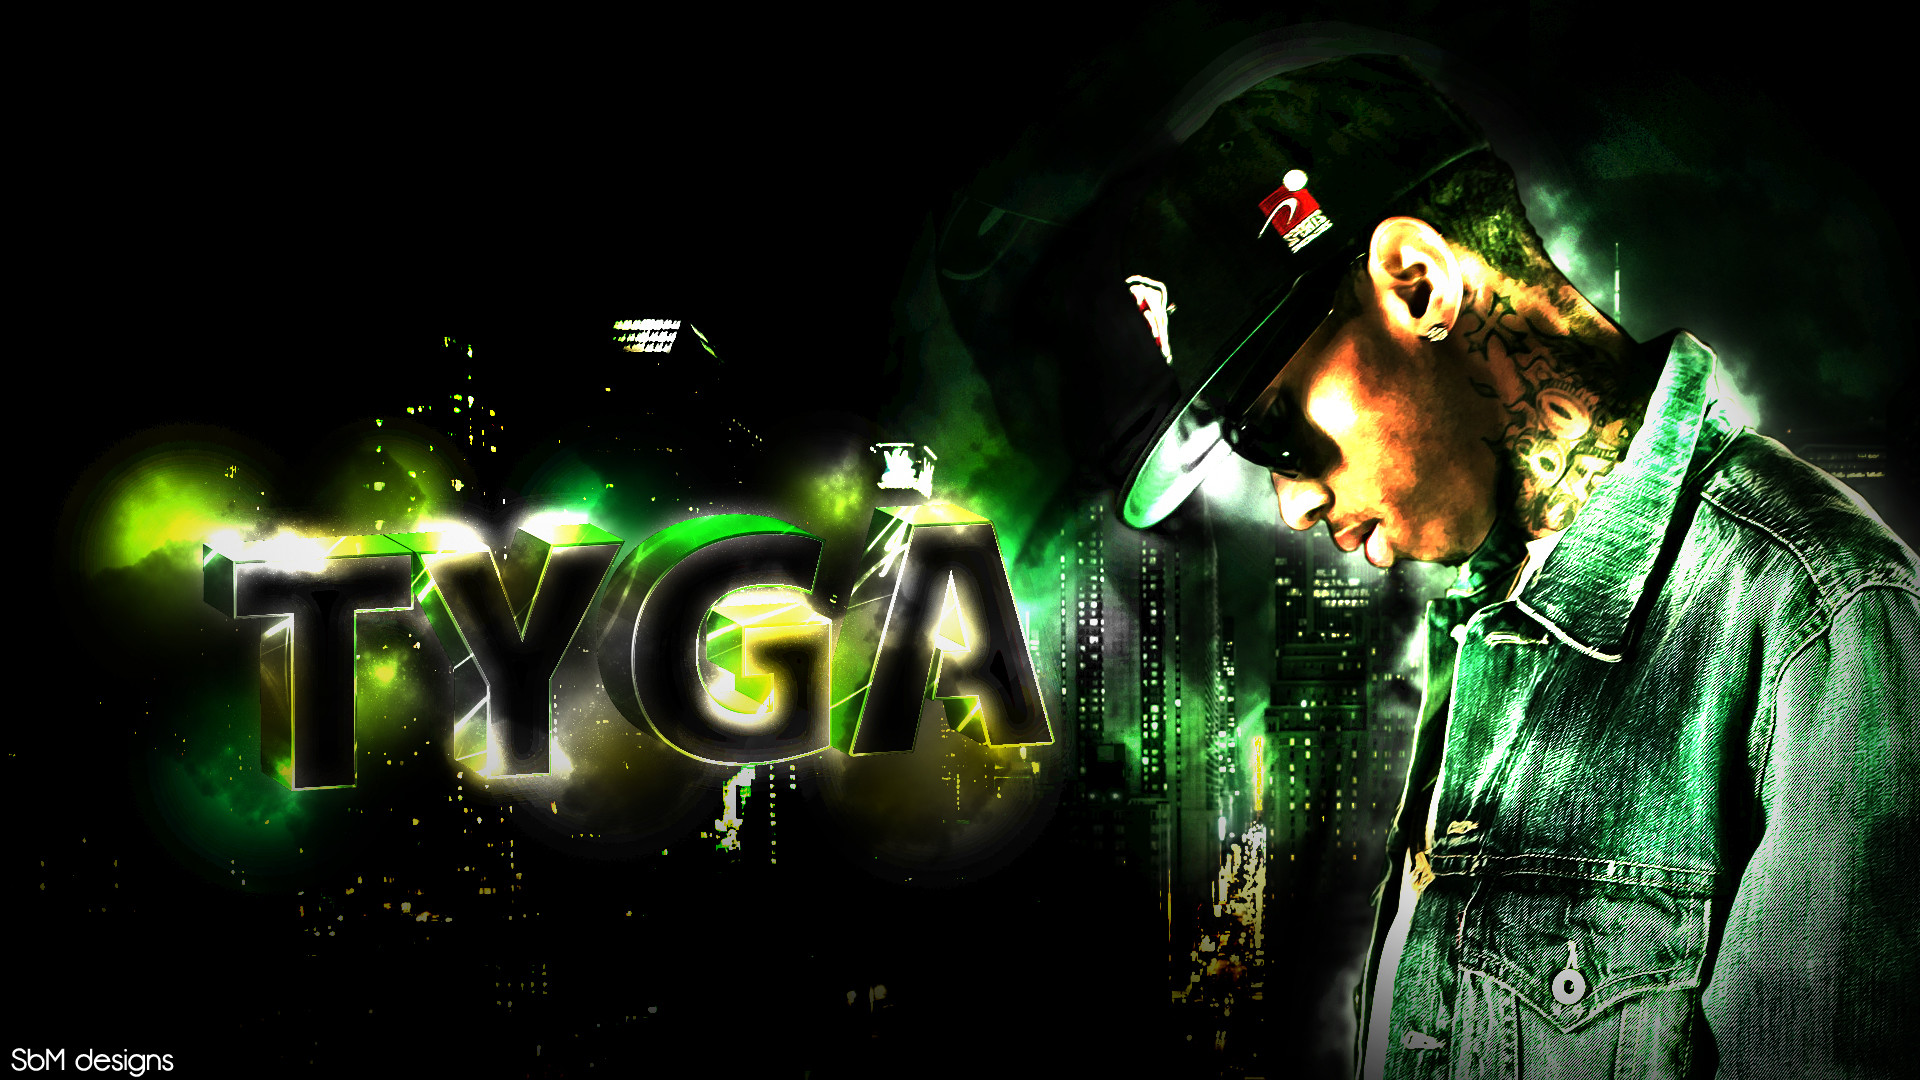 1920x1080 tyga-wallpapers-hd-rapper